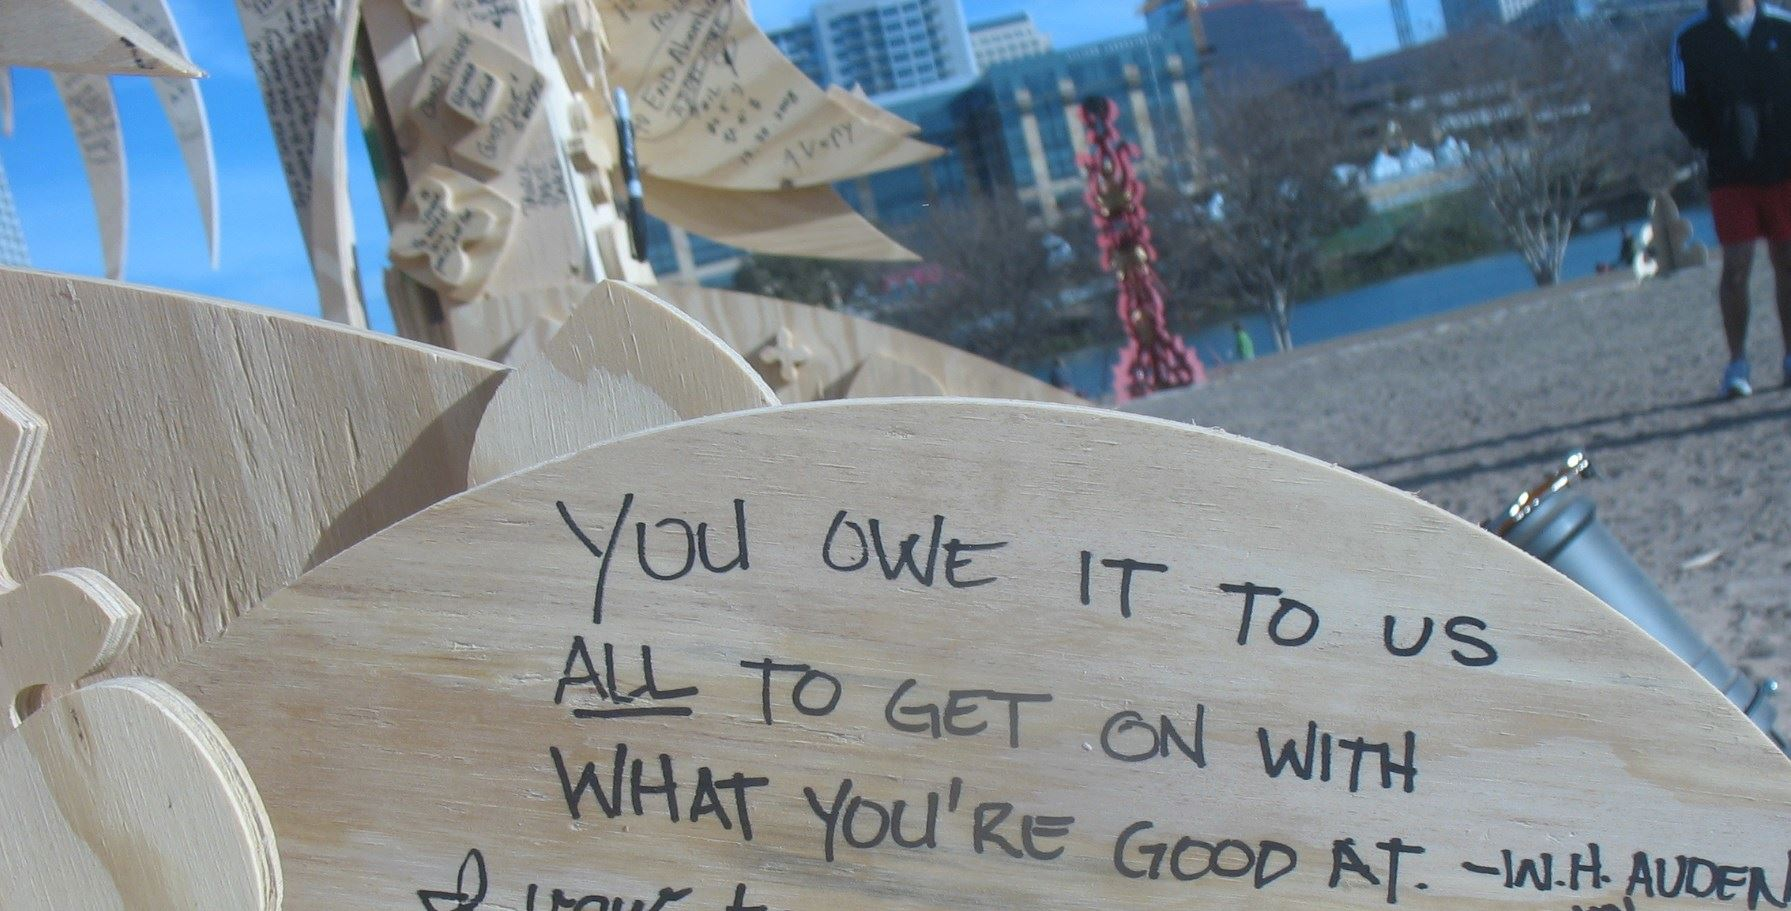 """Piece of resolution clock - someone wrote """"'You owe it to us all to get on with what you're good at.' - W.H. Auden"""""""